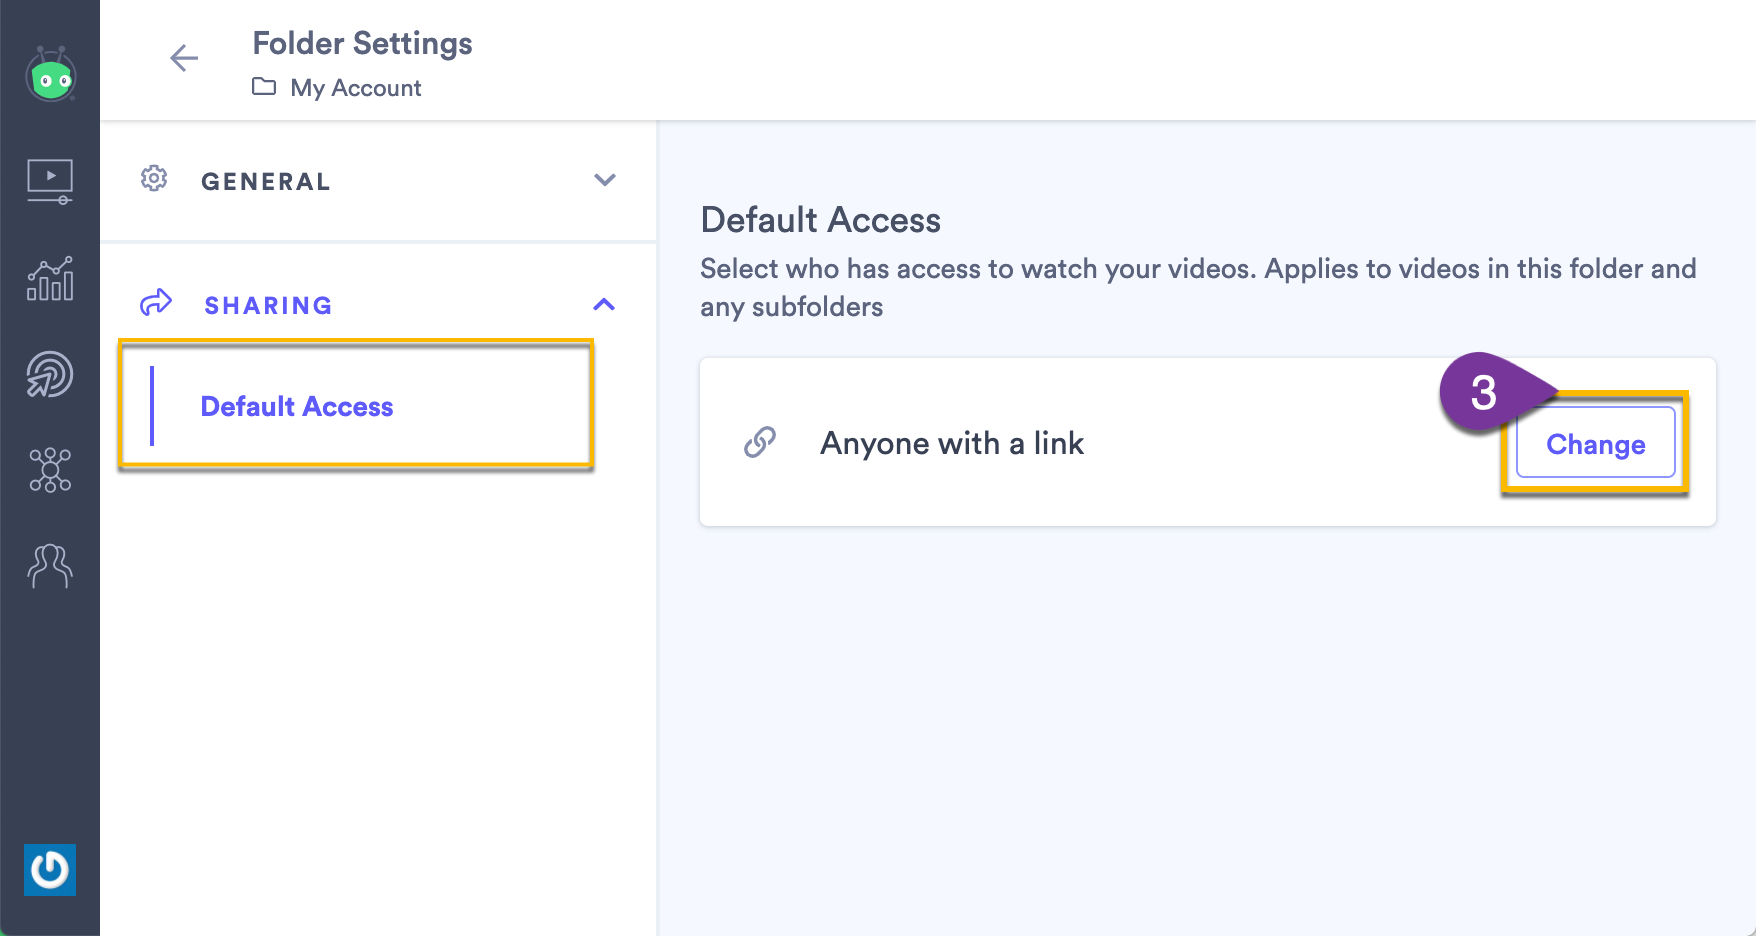 Changing the default access settings for the folder